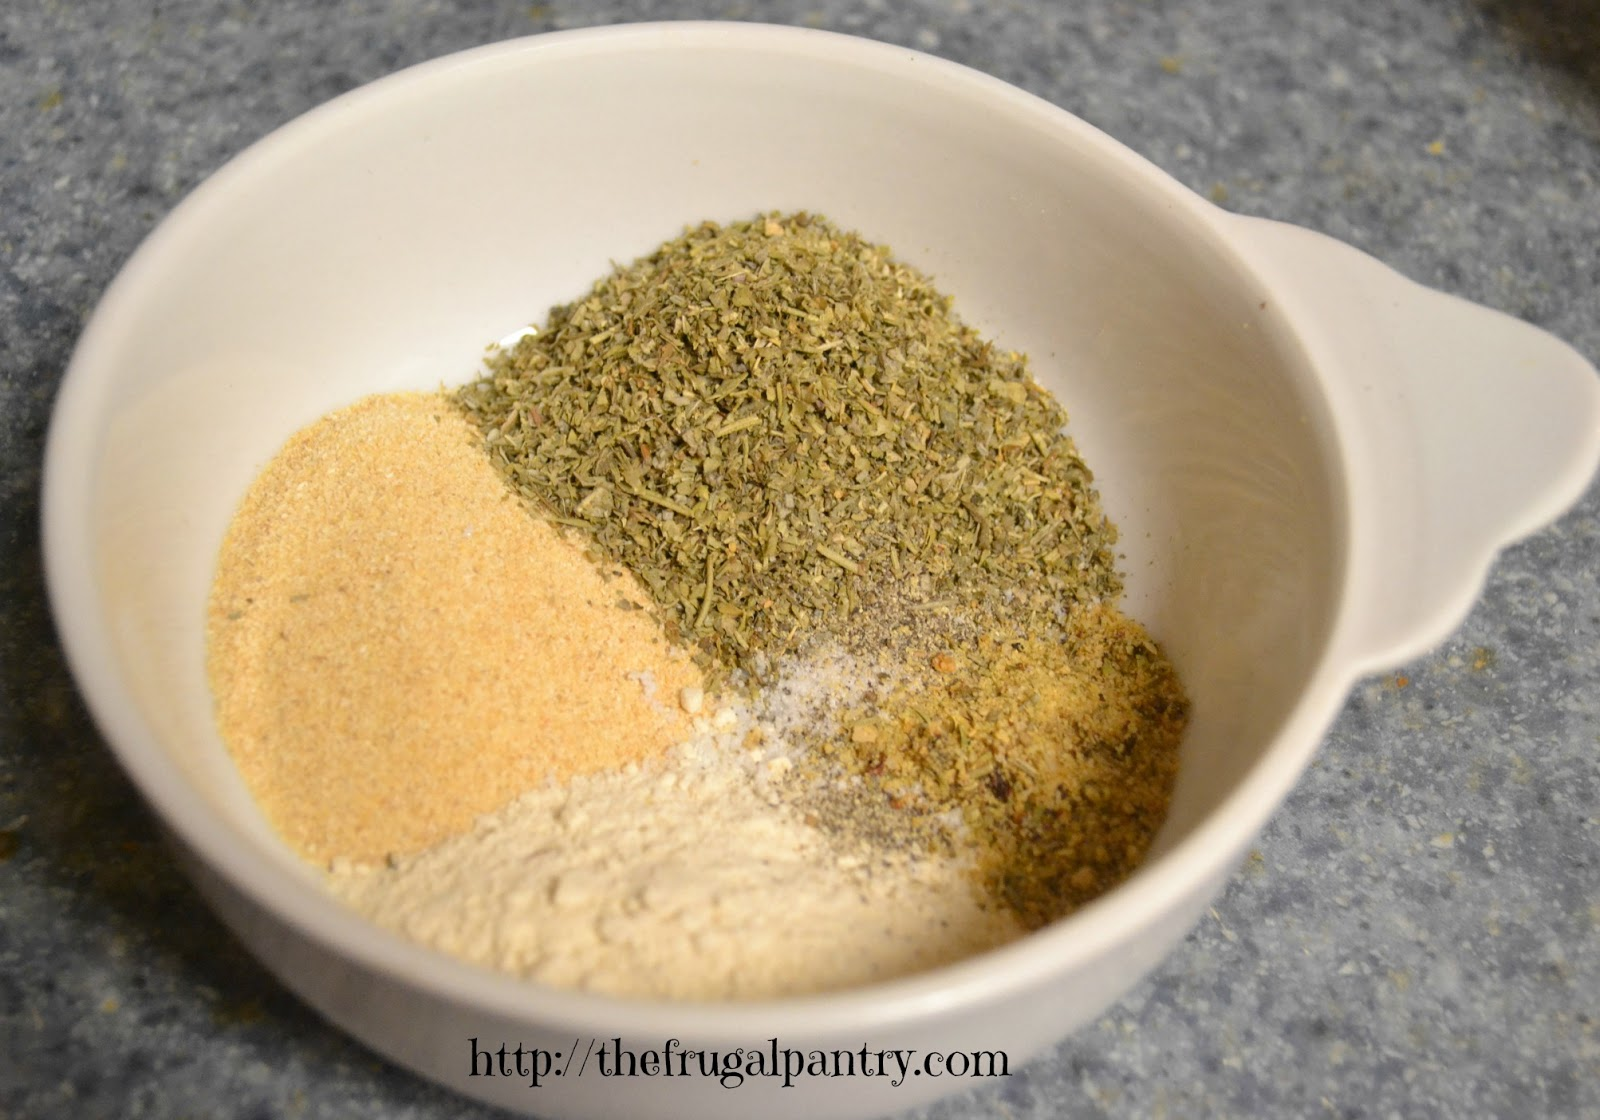 The Frugal Pantry: Italian Dressing Mix